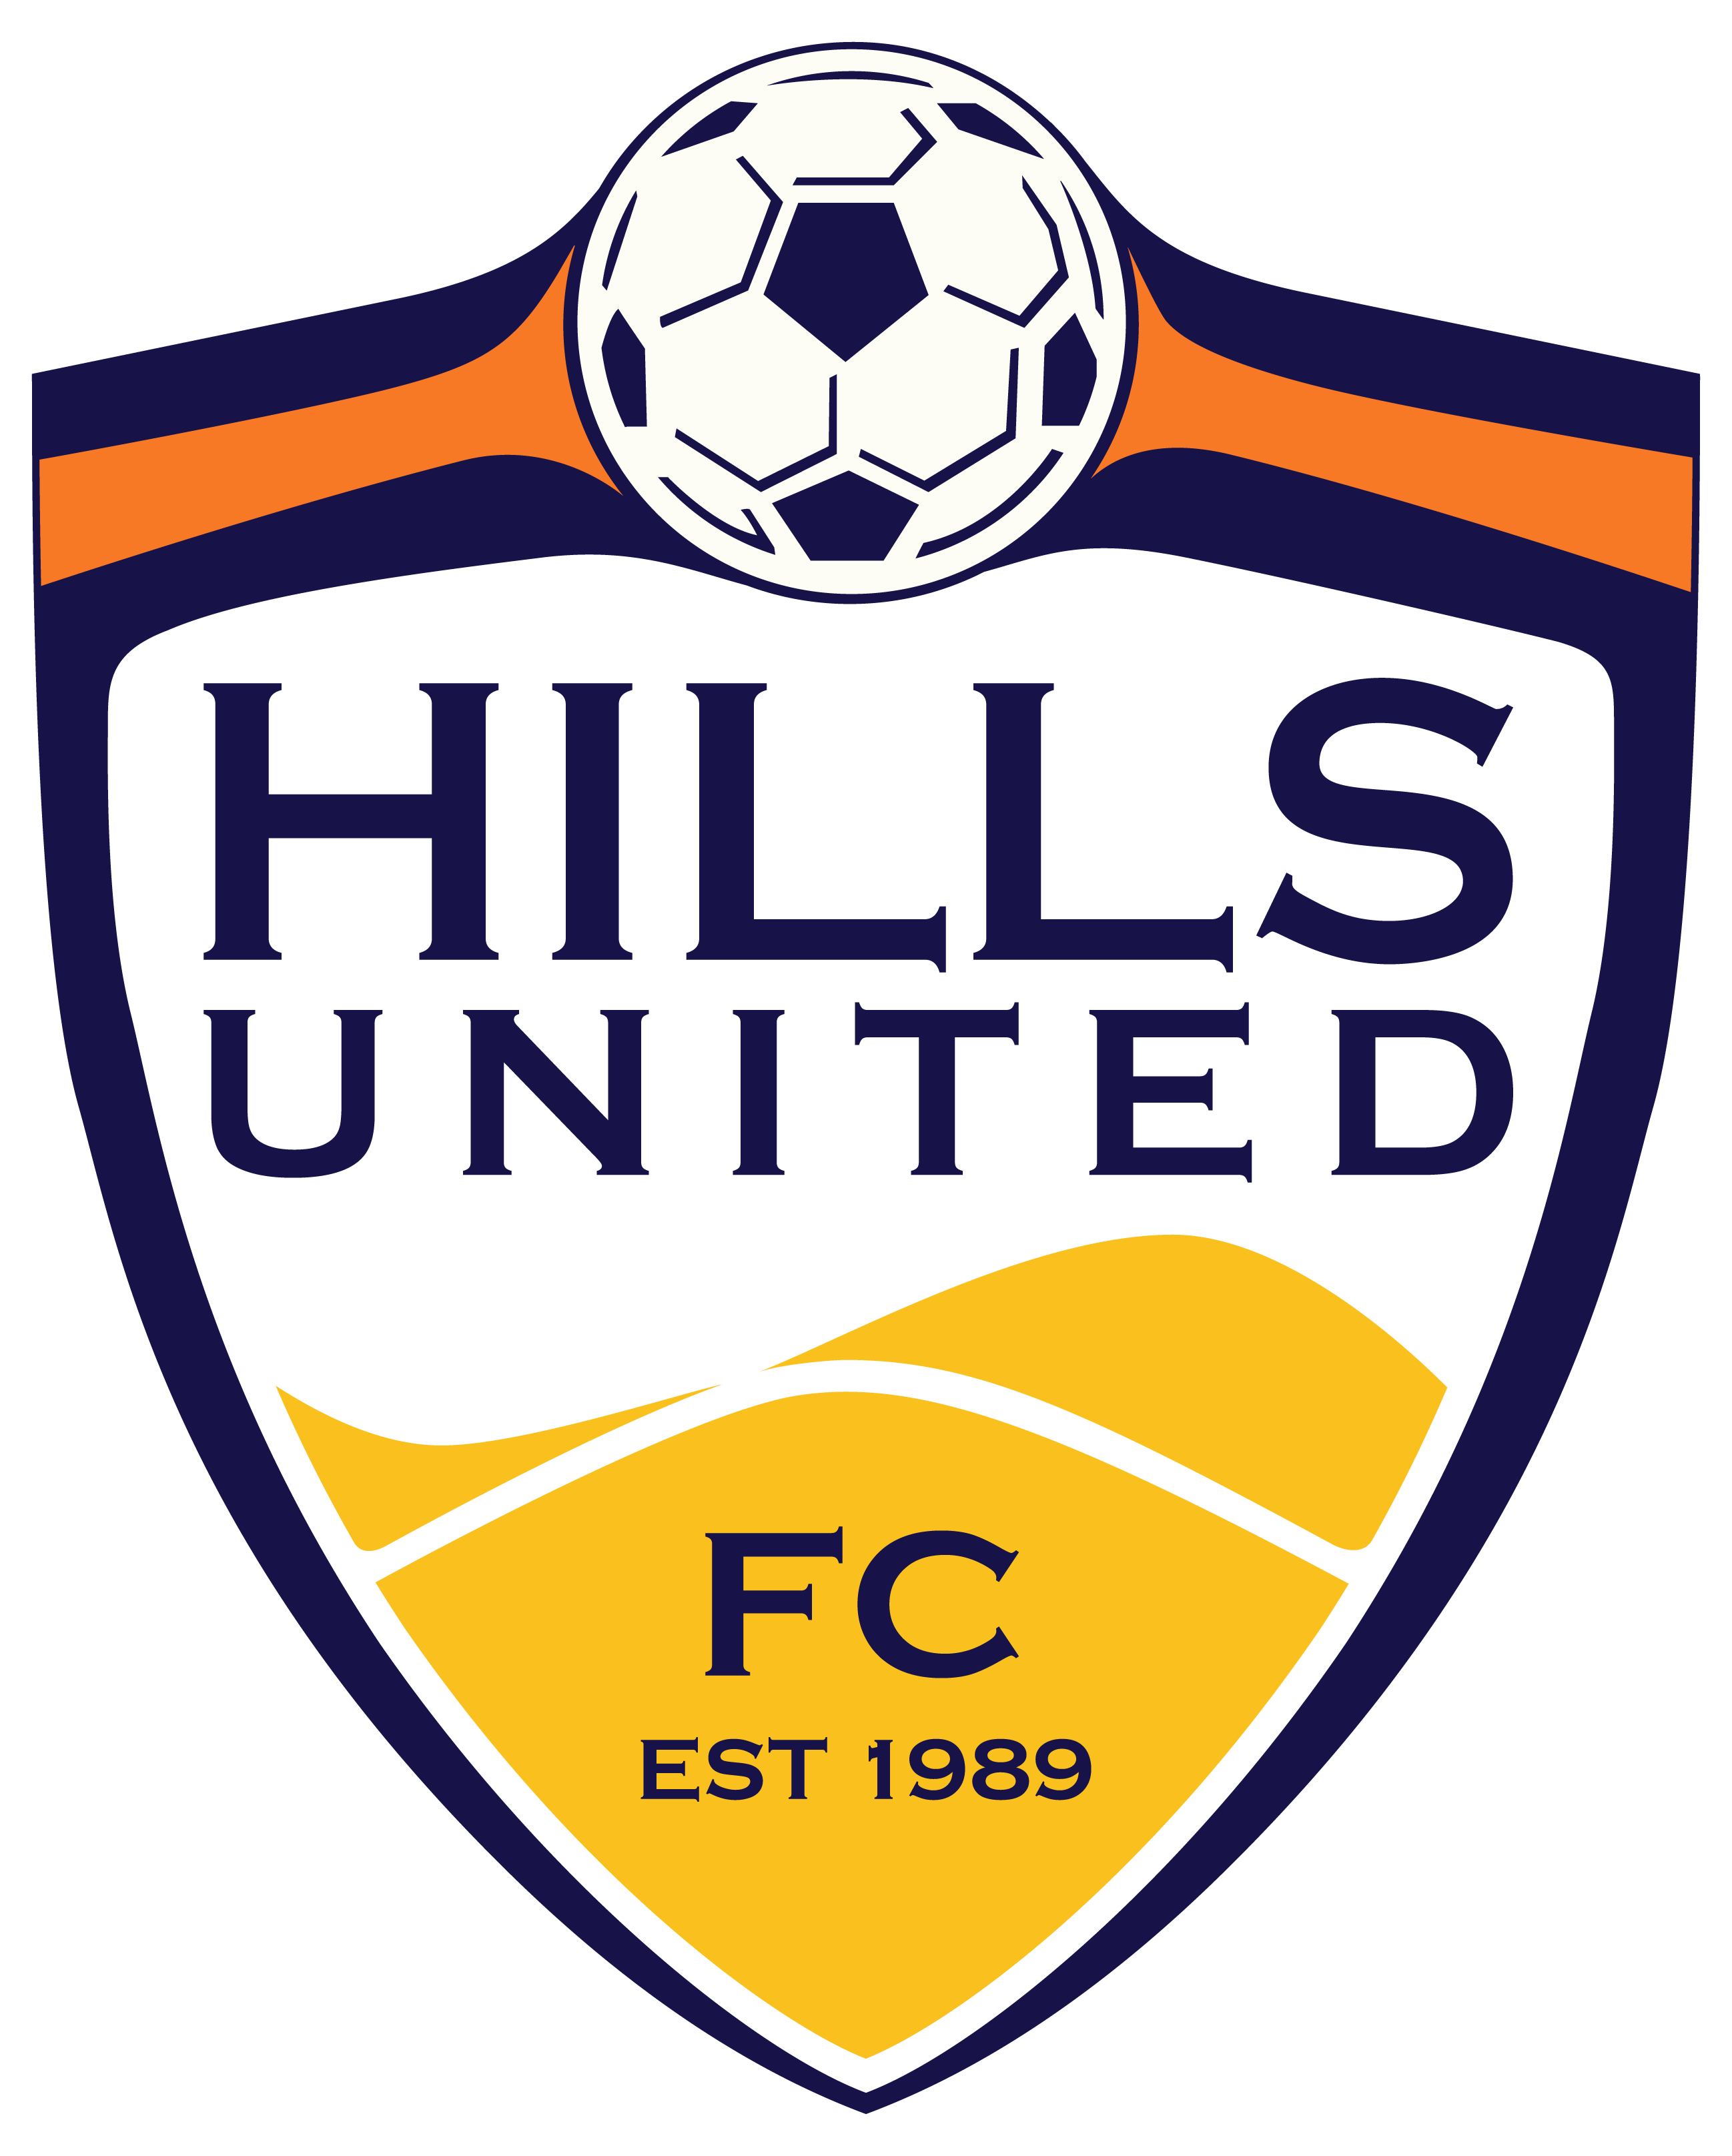 Hills United Football Club